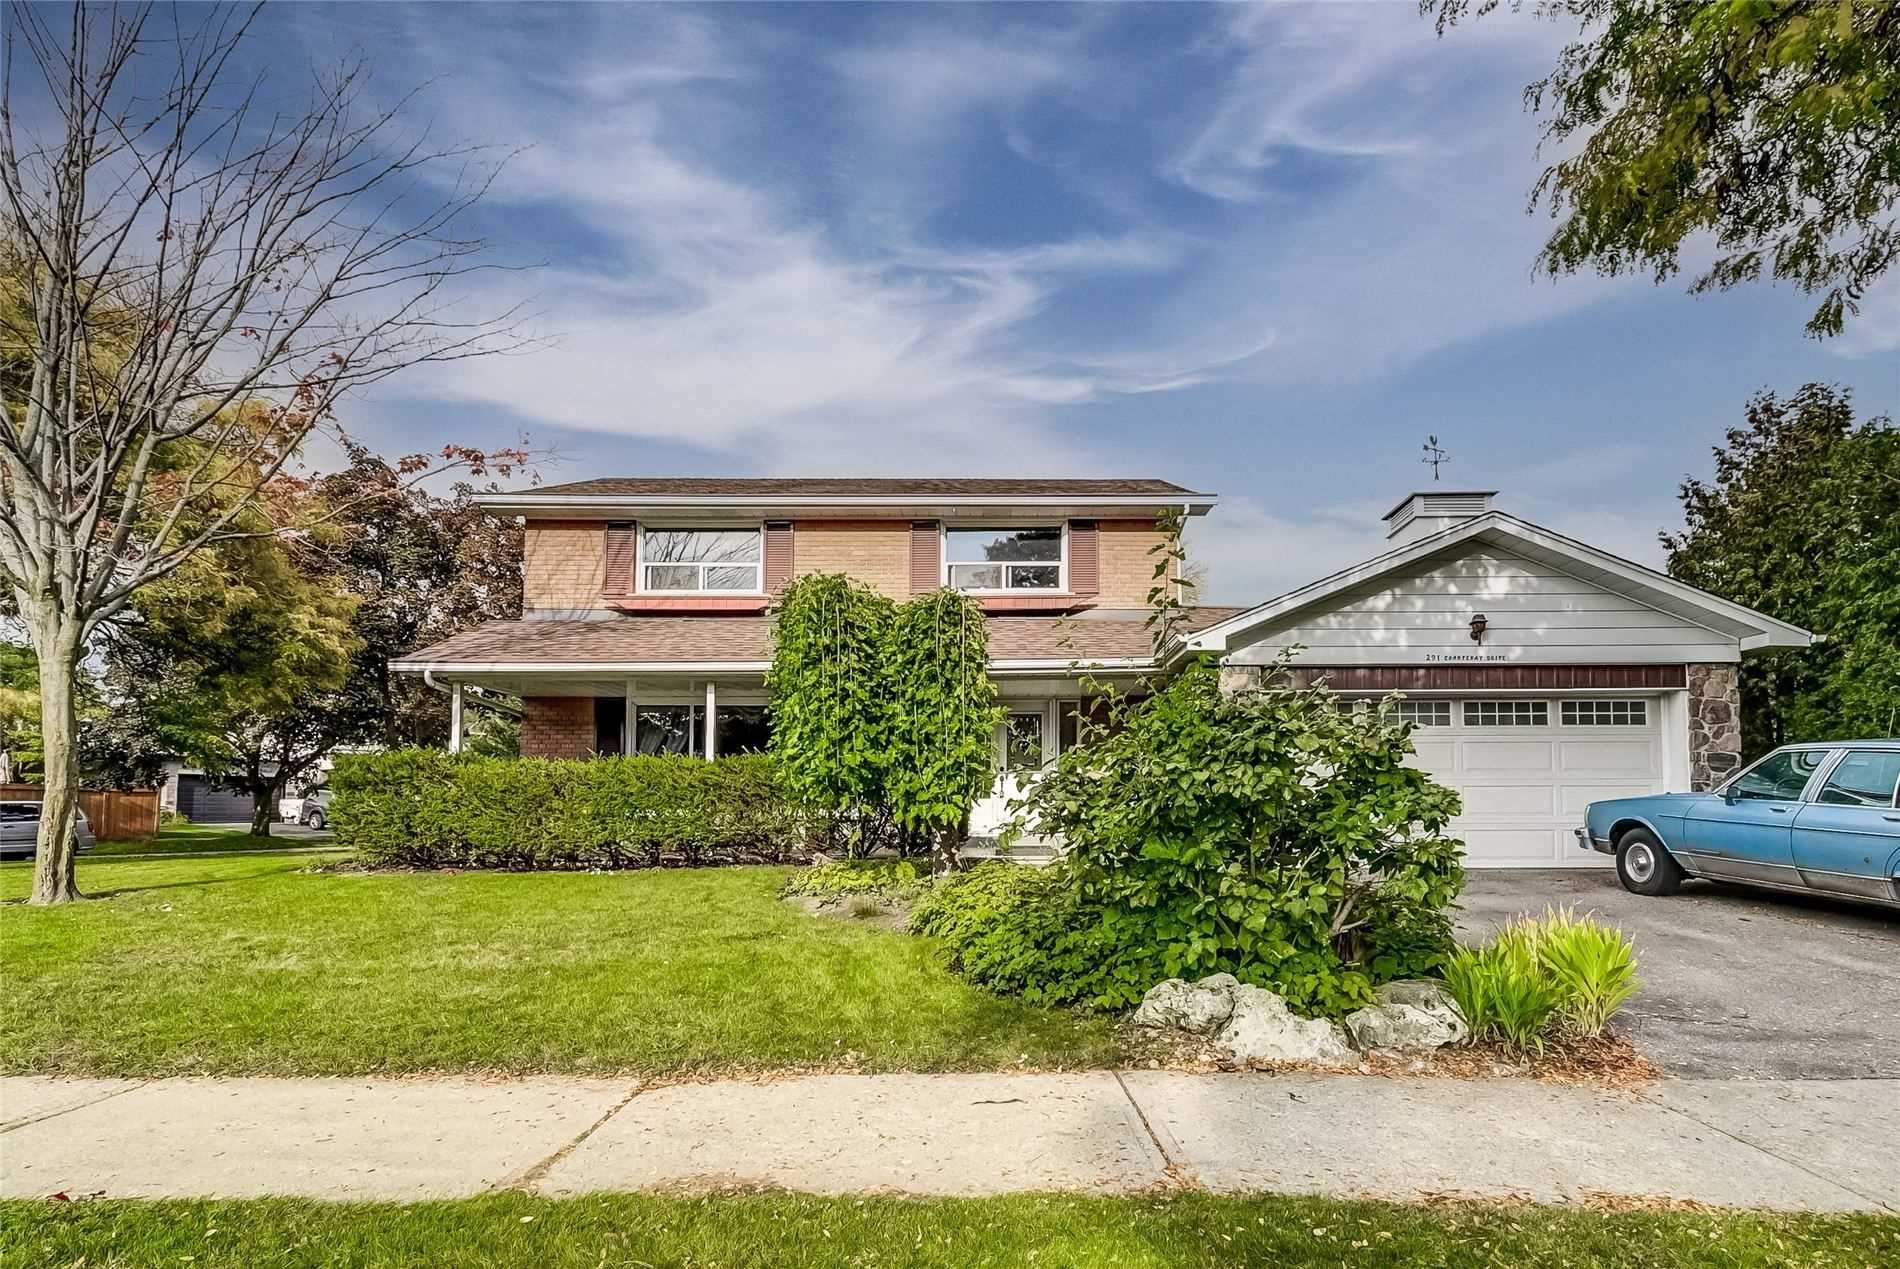 291 Chantenay Dr, Mississauga, ON L5A1E6 - MLS#: W5400819